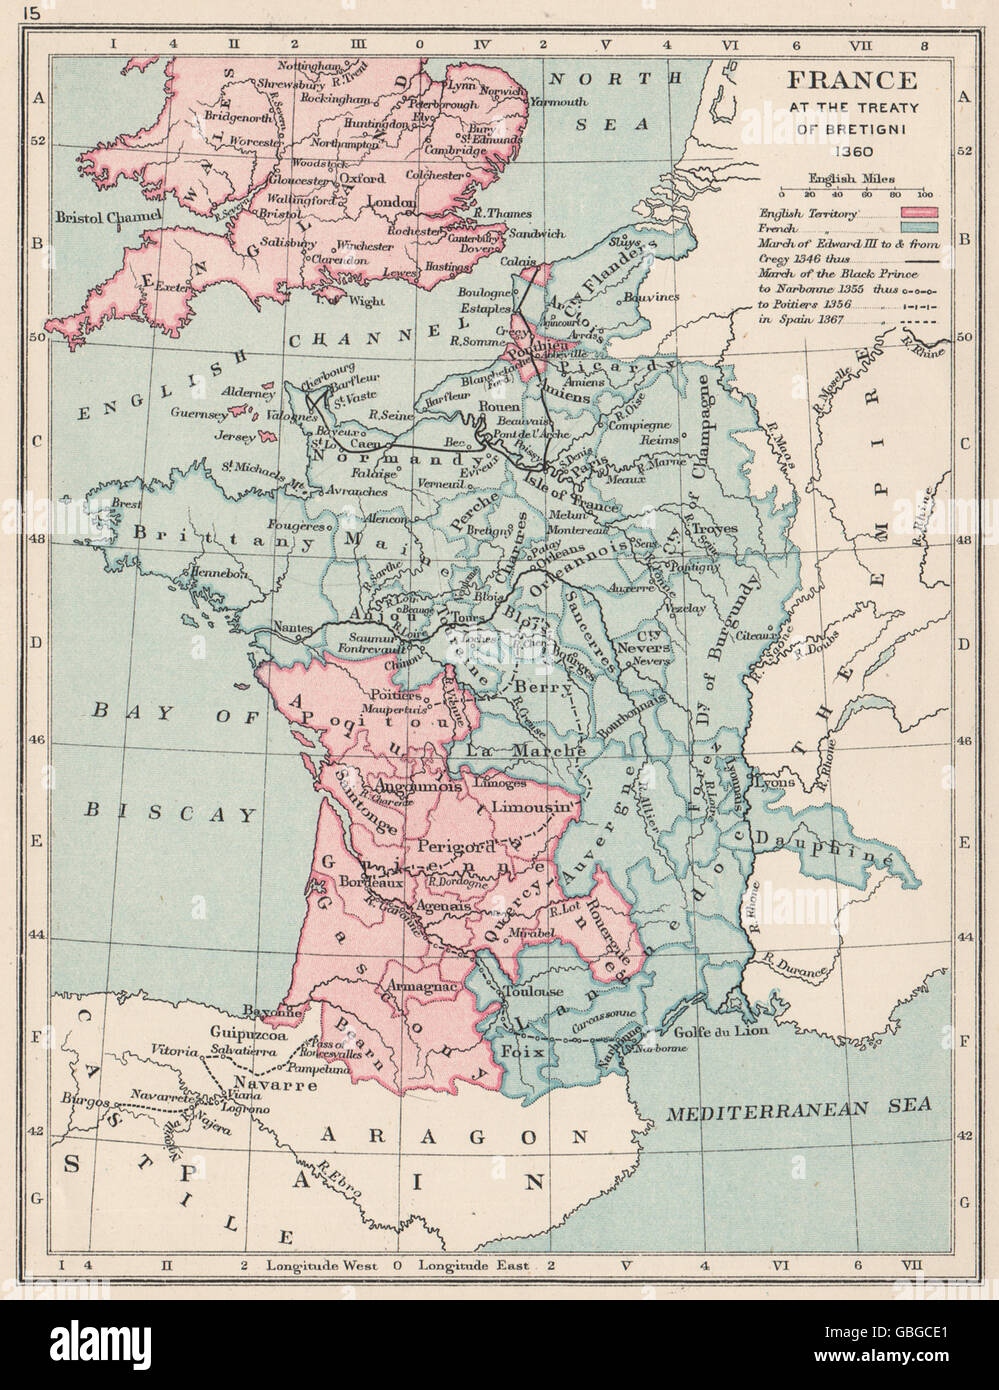 HUNDRED YEARS WAR: France in 1360: Treaty of Bretigny. English lands, 1907 map - Stock Image